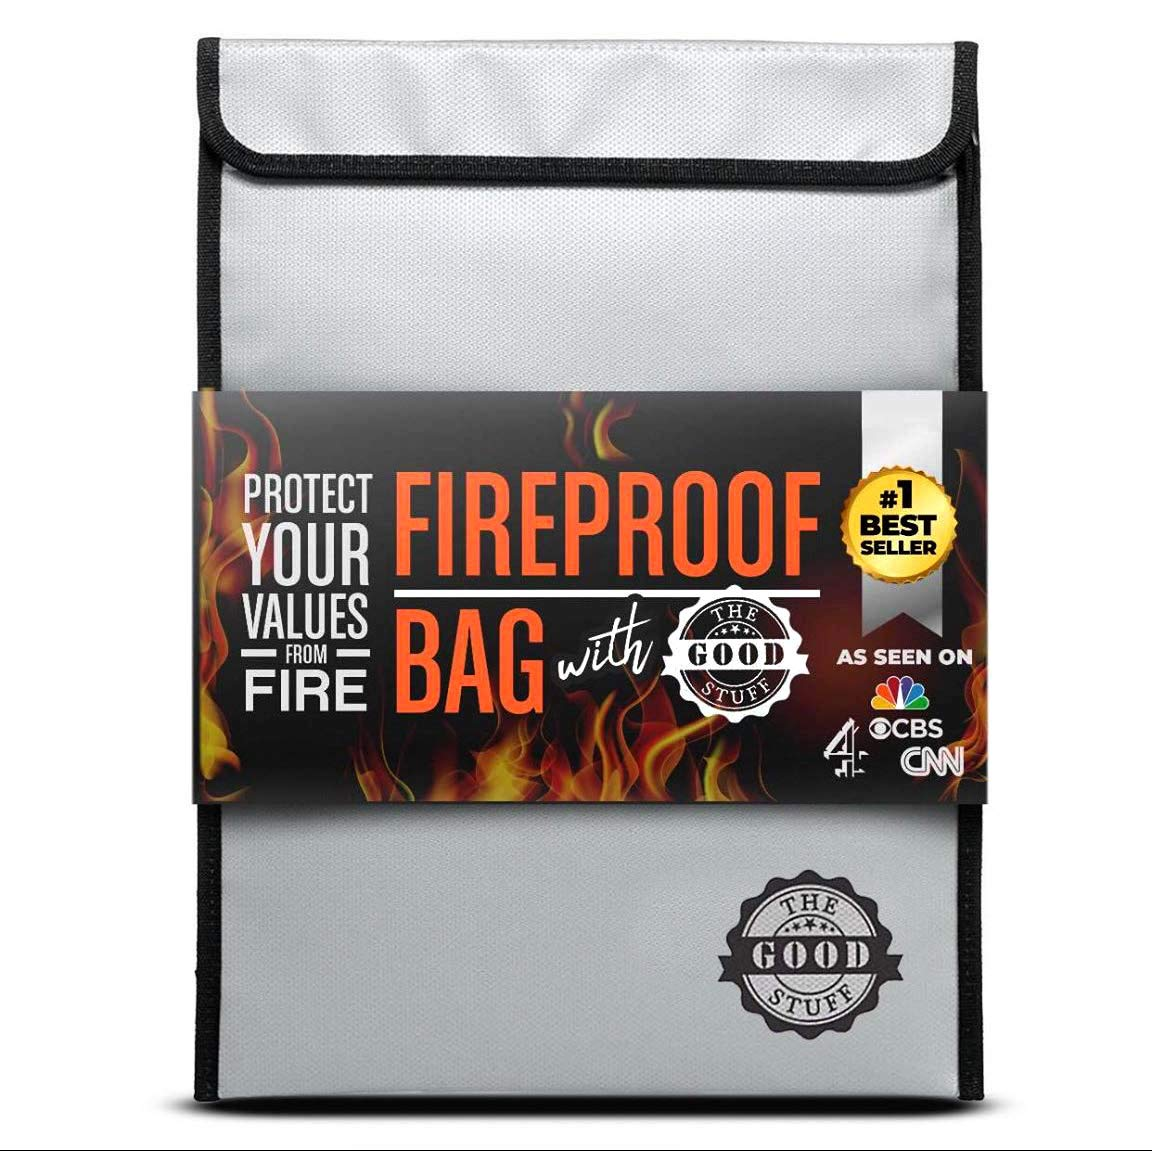 'THE GOOD STUFF' RELEASES NEW HIGH-QUALITY FIREPROOF DOCUMENT BAG